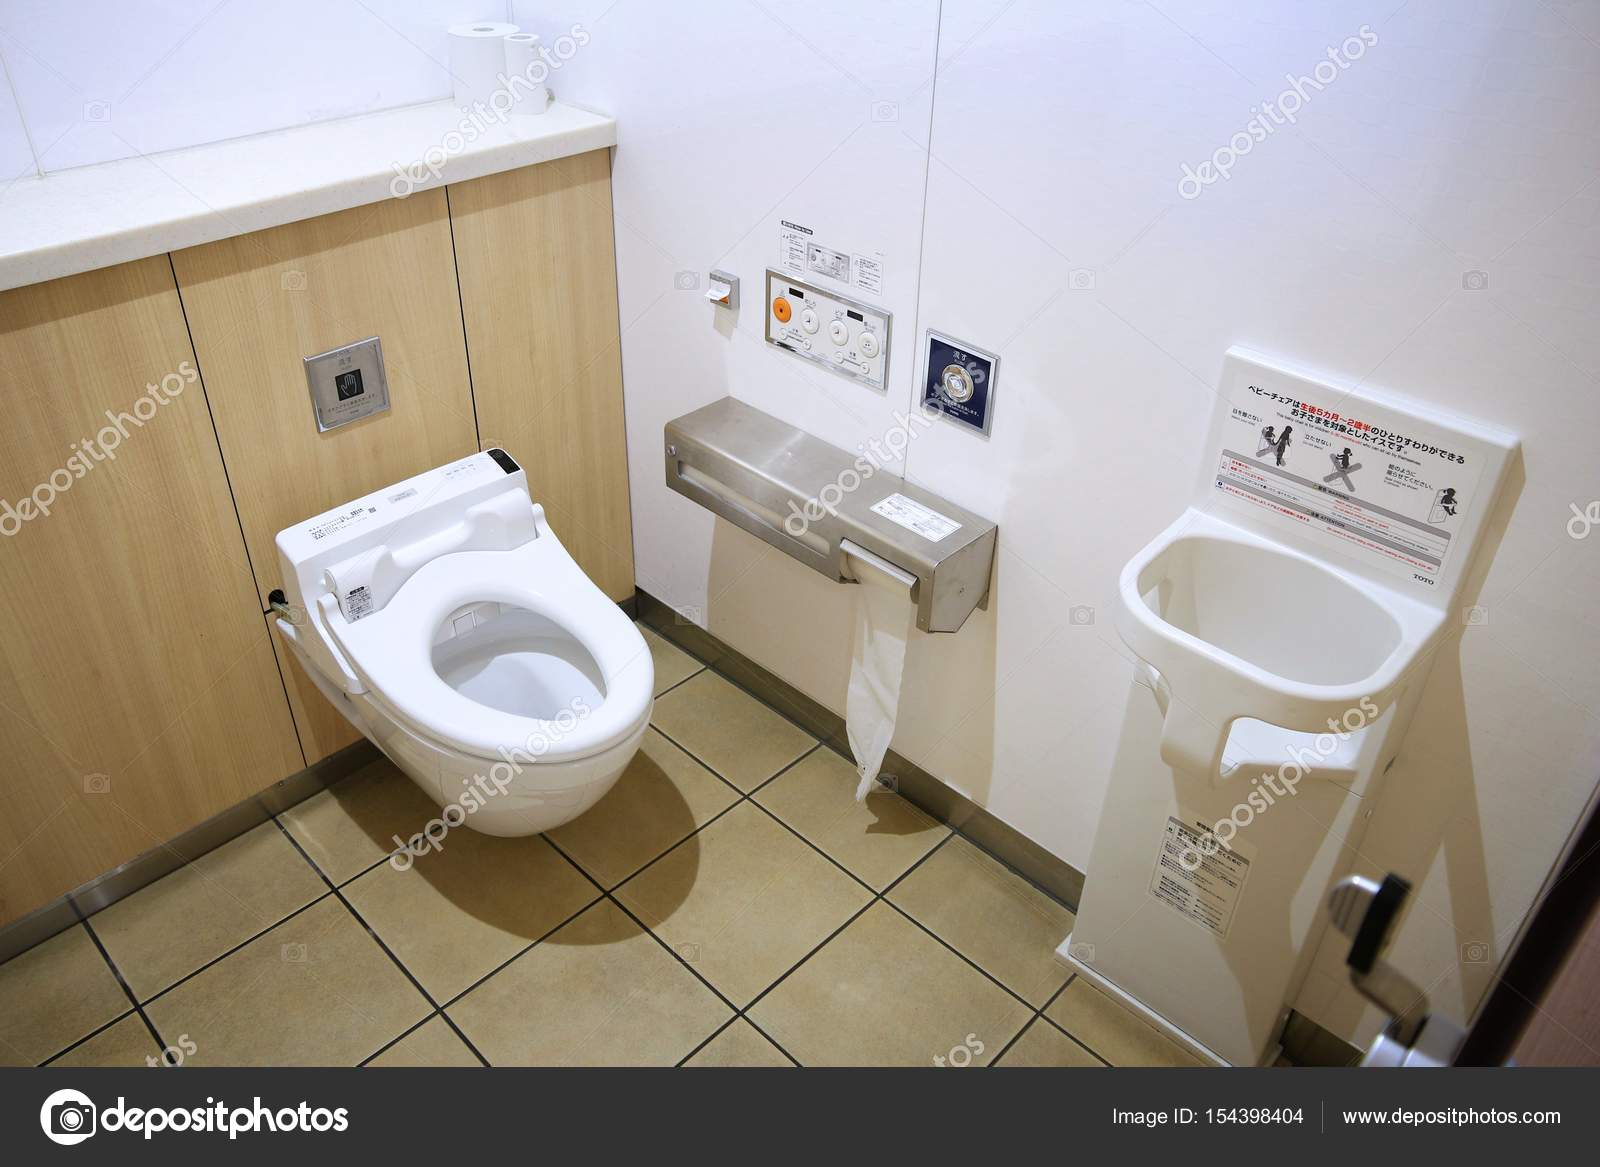 Japan electronic toilet – Stock Editorial Photo © tupungato #154398404